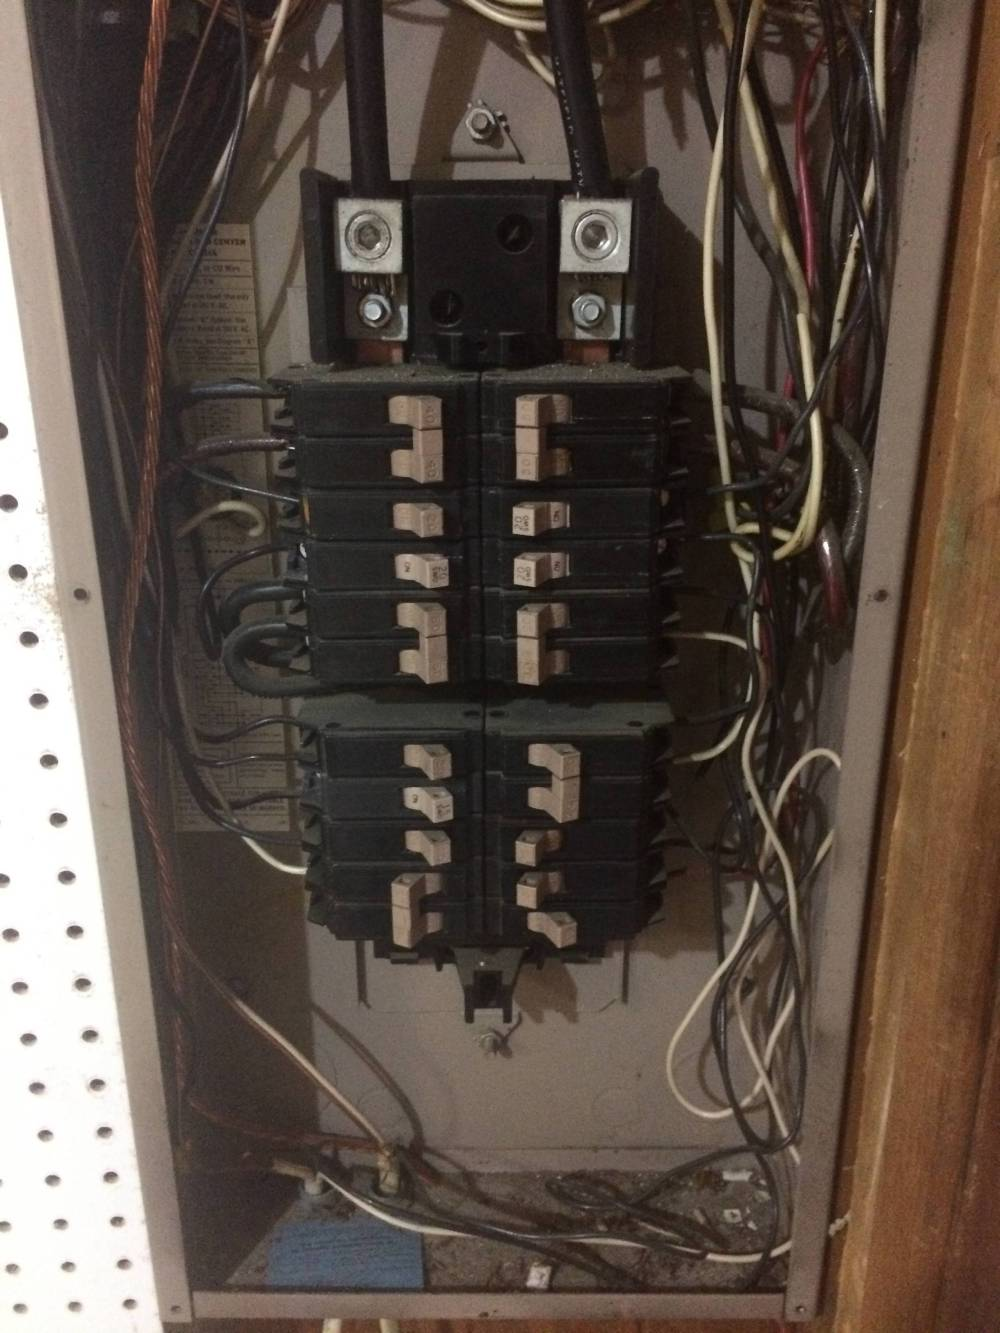 medium resolution of panel incoming wiring connectionscutler hammer panel diagram wiringwiring a cutler hammer breaker box 2 wiring diagram